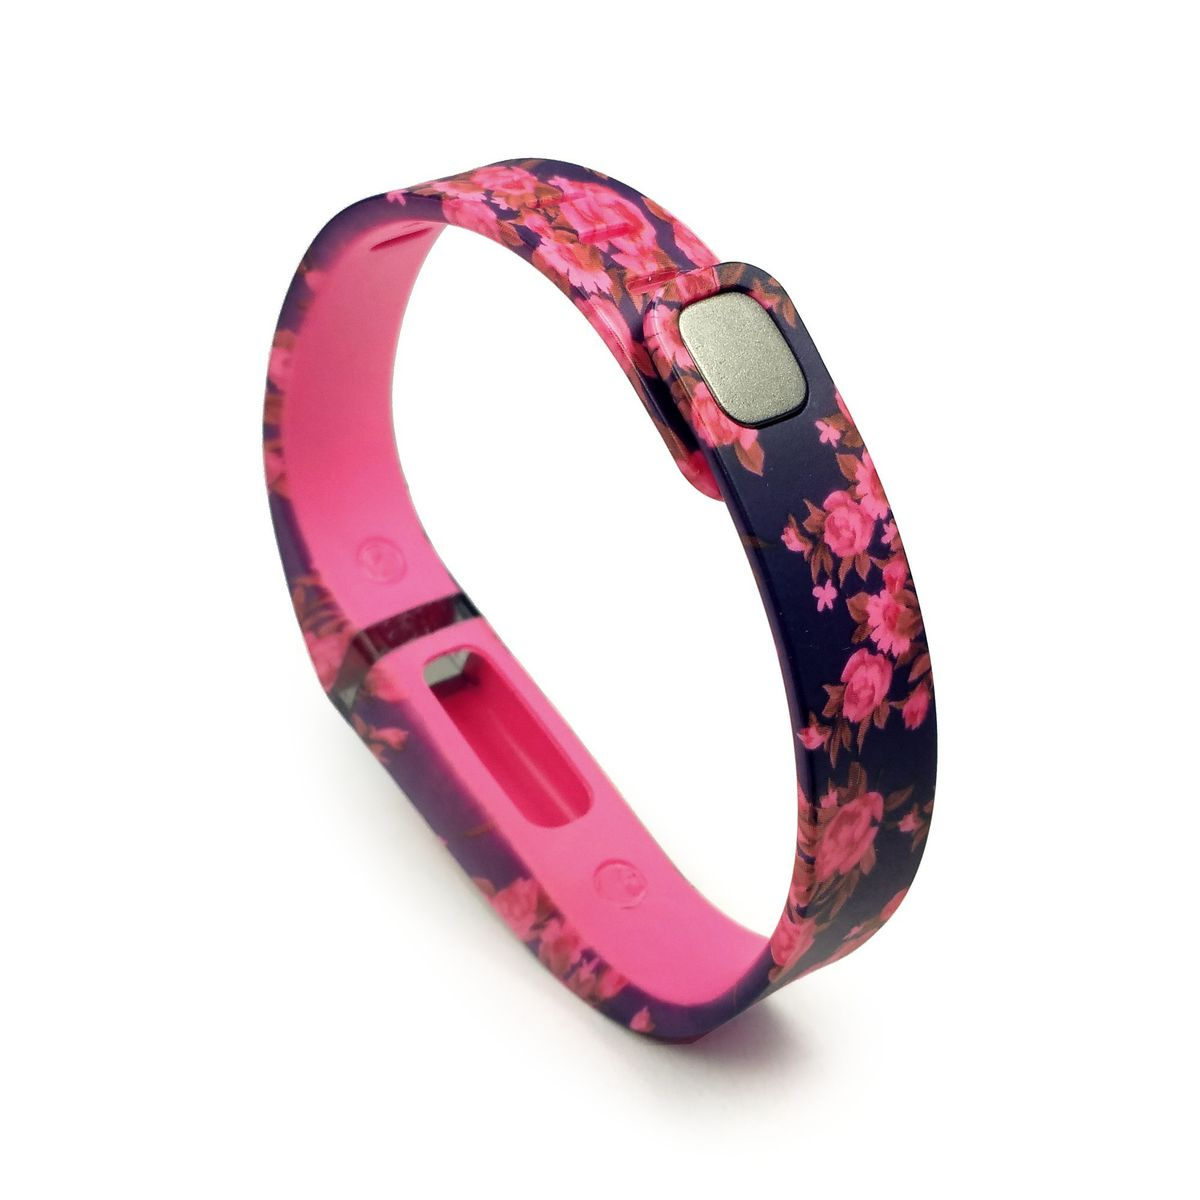 Tuff Luv Adjustable Strap Wristband And Clasp For Fitbit Flex